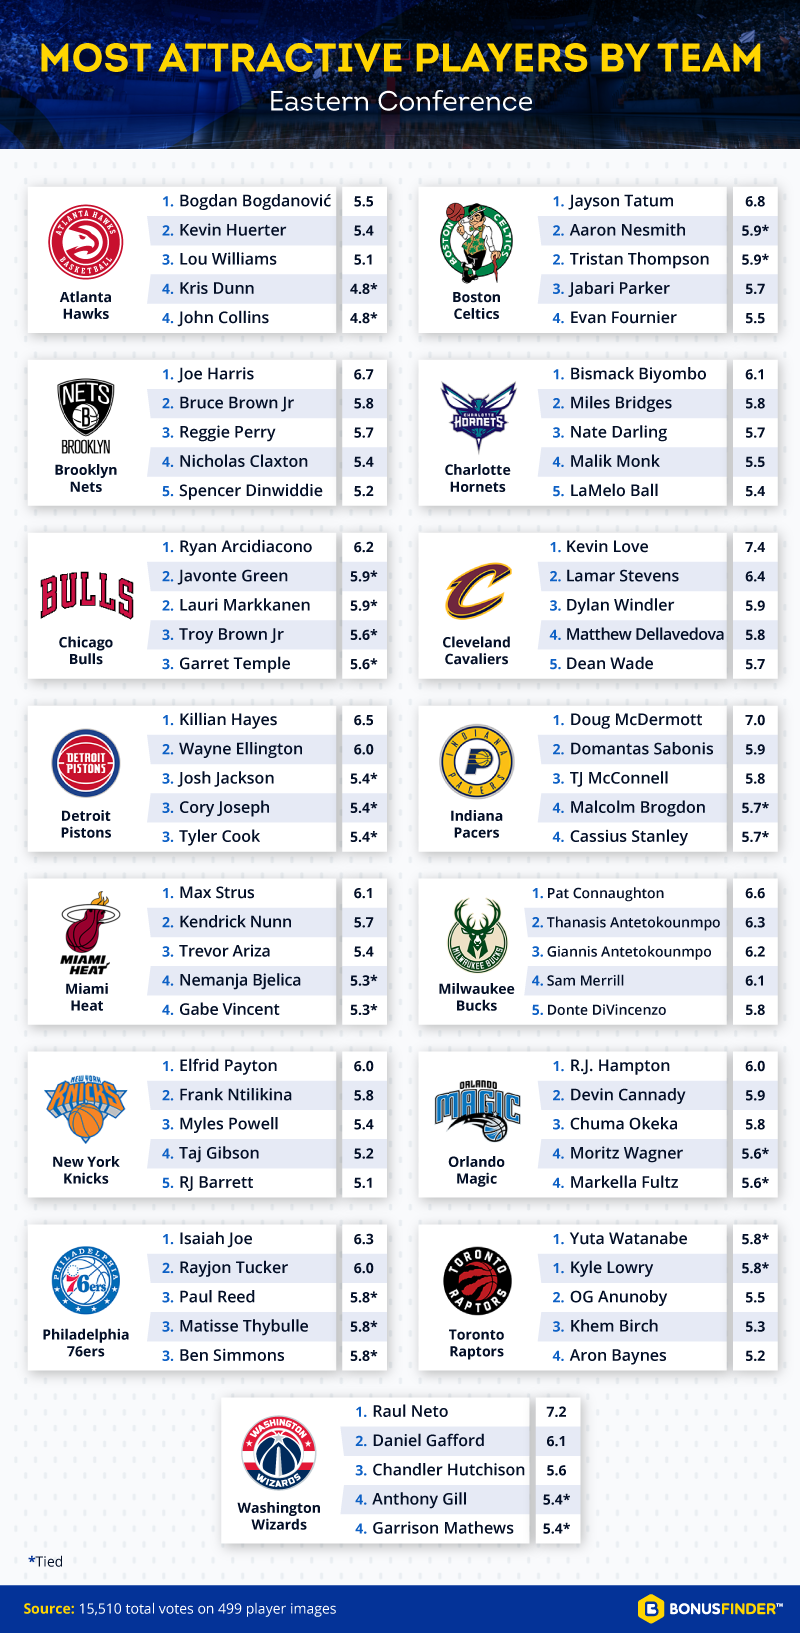 Most Attractive Players - Eastern Conference